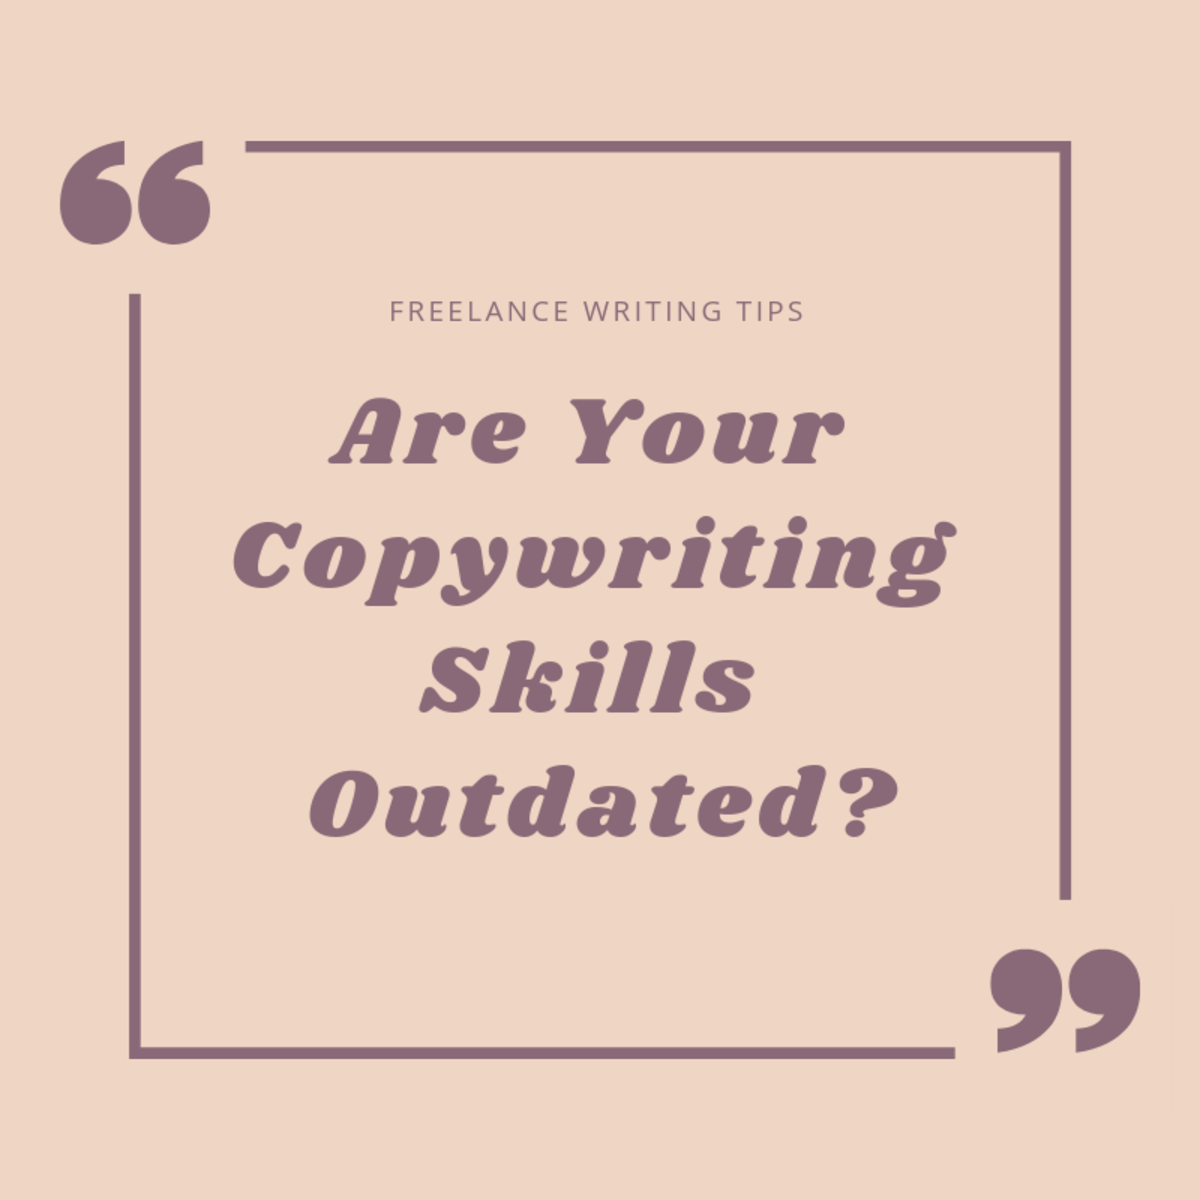 Are Your Copywriting Skills Outdated?